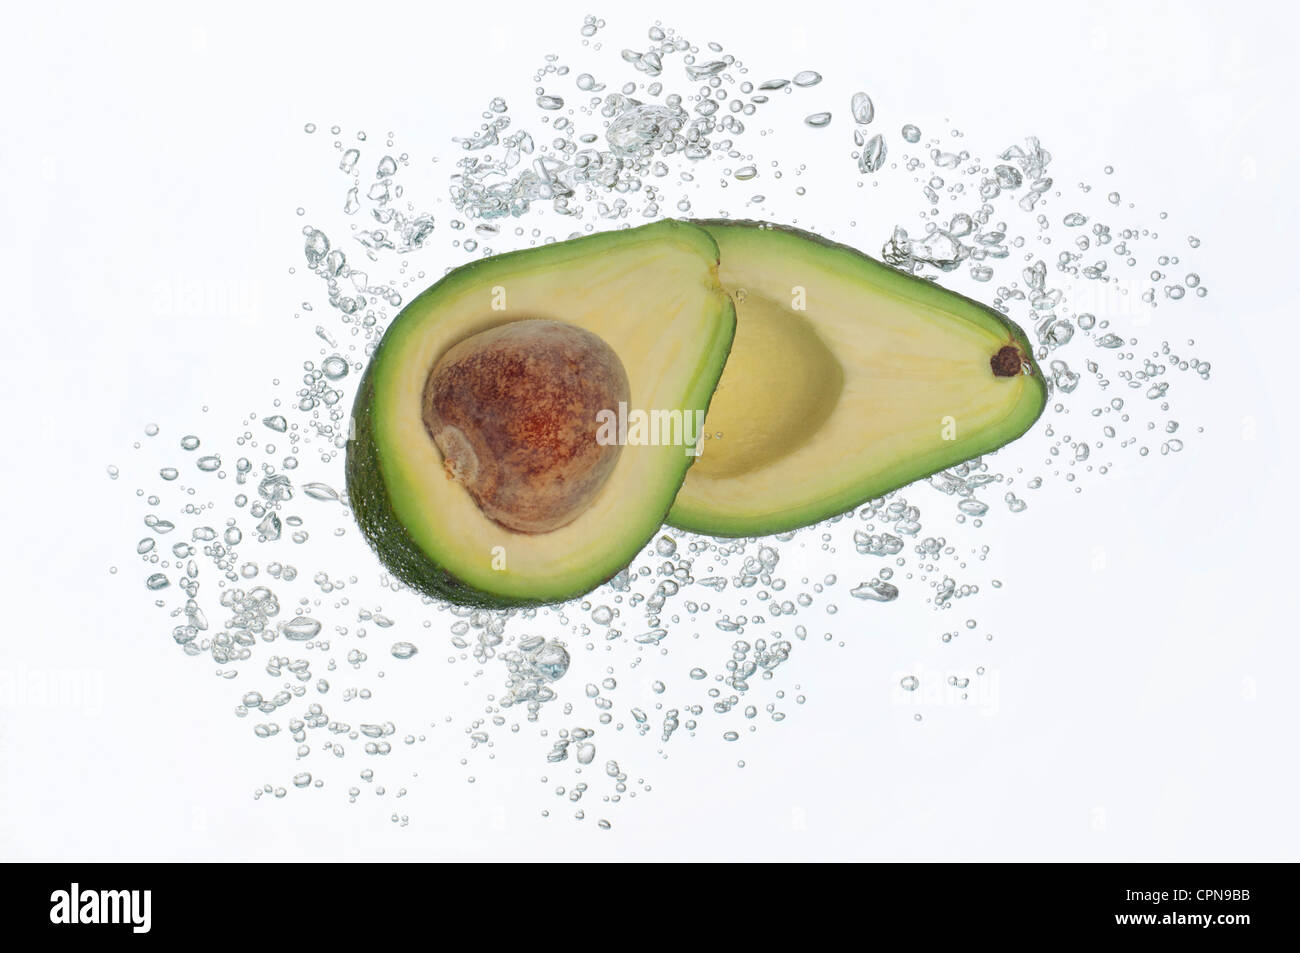 Avocado halves submerged in sparkling water - Stock Image